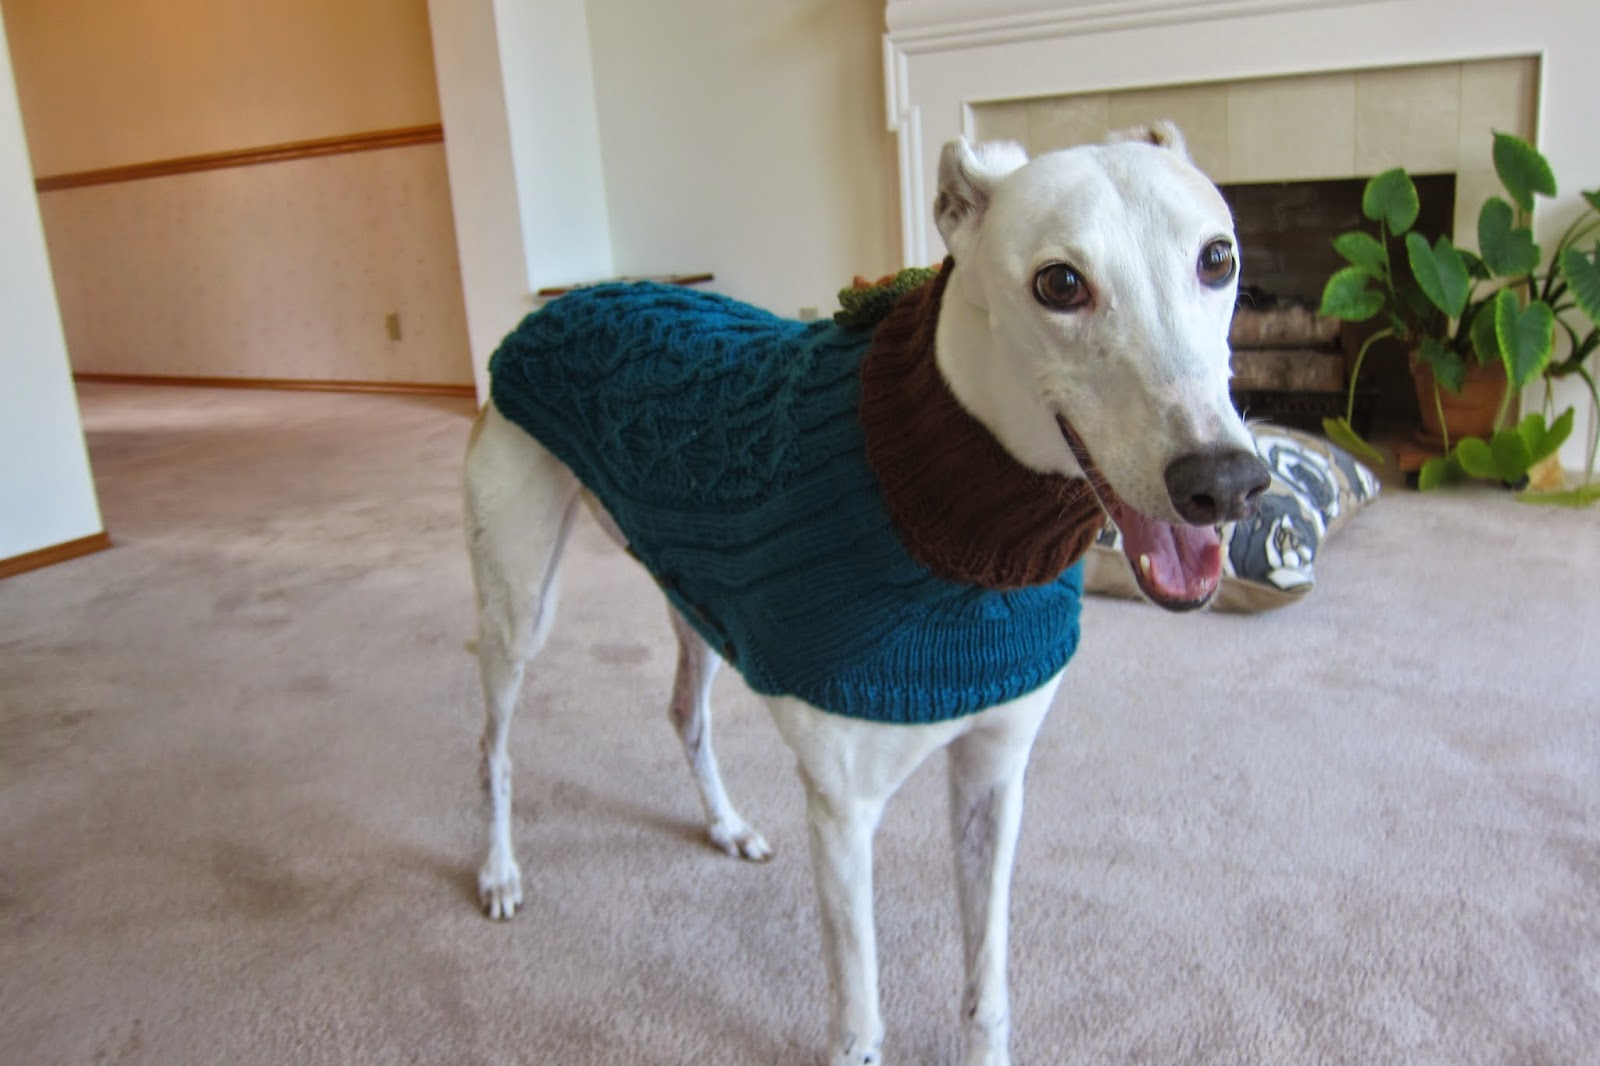 Knitting Patterns For Greyhound Sweaters : Greyhound Knit Sweaters: Blue green sweater for a girl dog